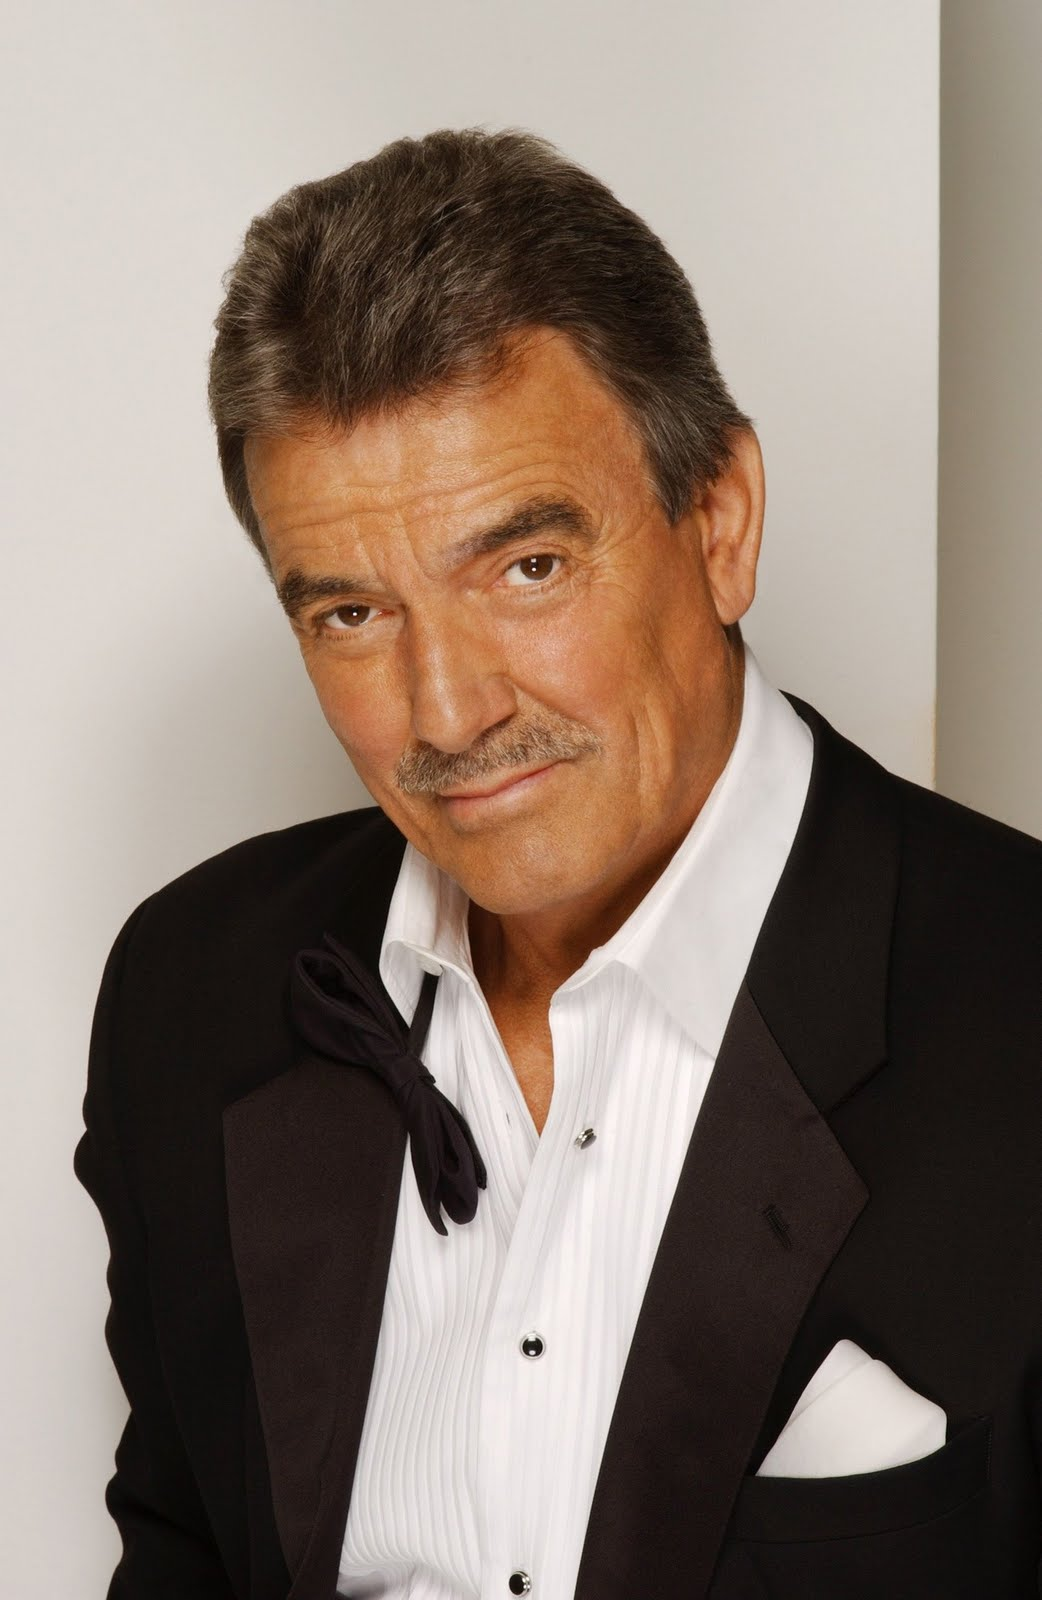 The 77-year old son of father (?) and mother(?), 185 cm tall Eric Braeden in 2018 photo